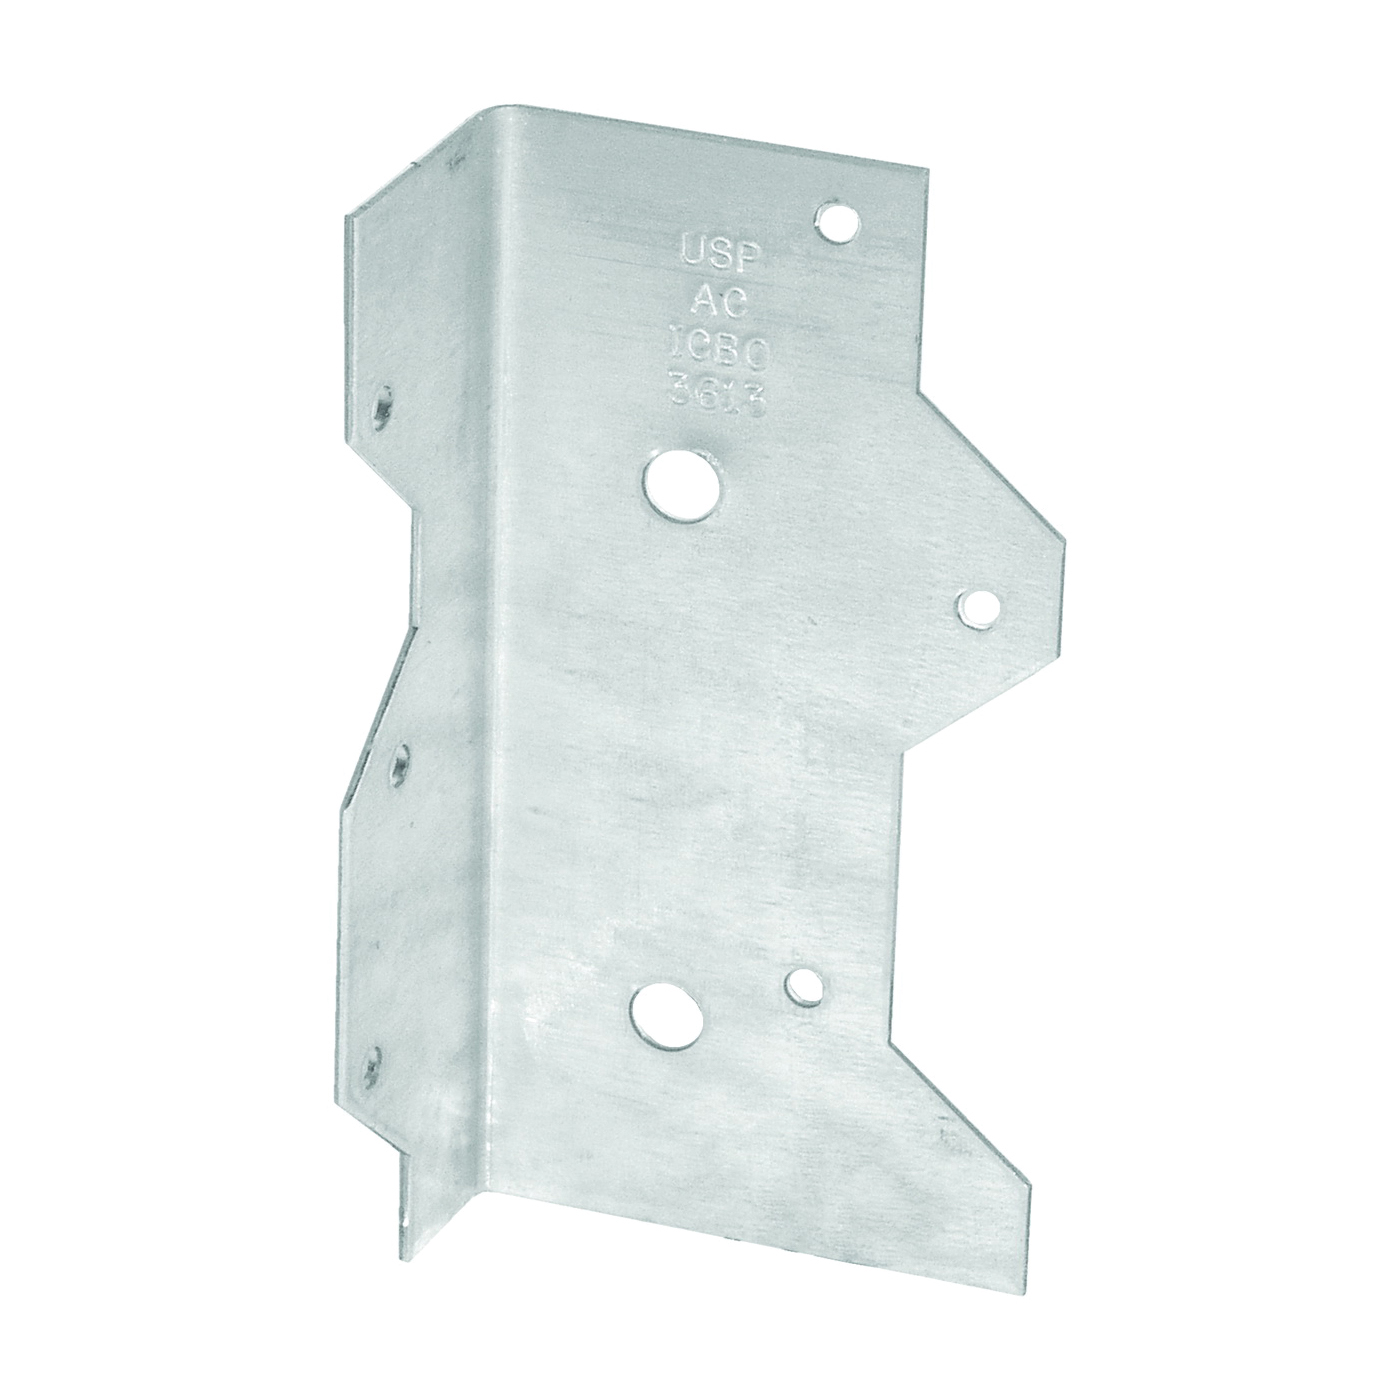 Picture of MiTek AC7-TZ Framing Angle, 1-5/16 in W, 2-3/8 in D, 6-15/16 in H, Steel, Zinc